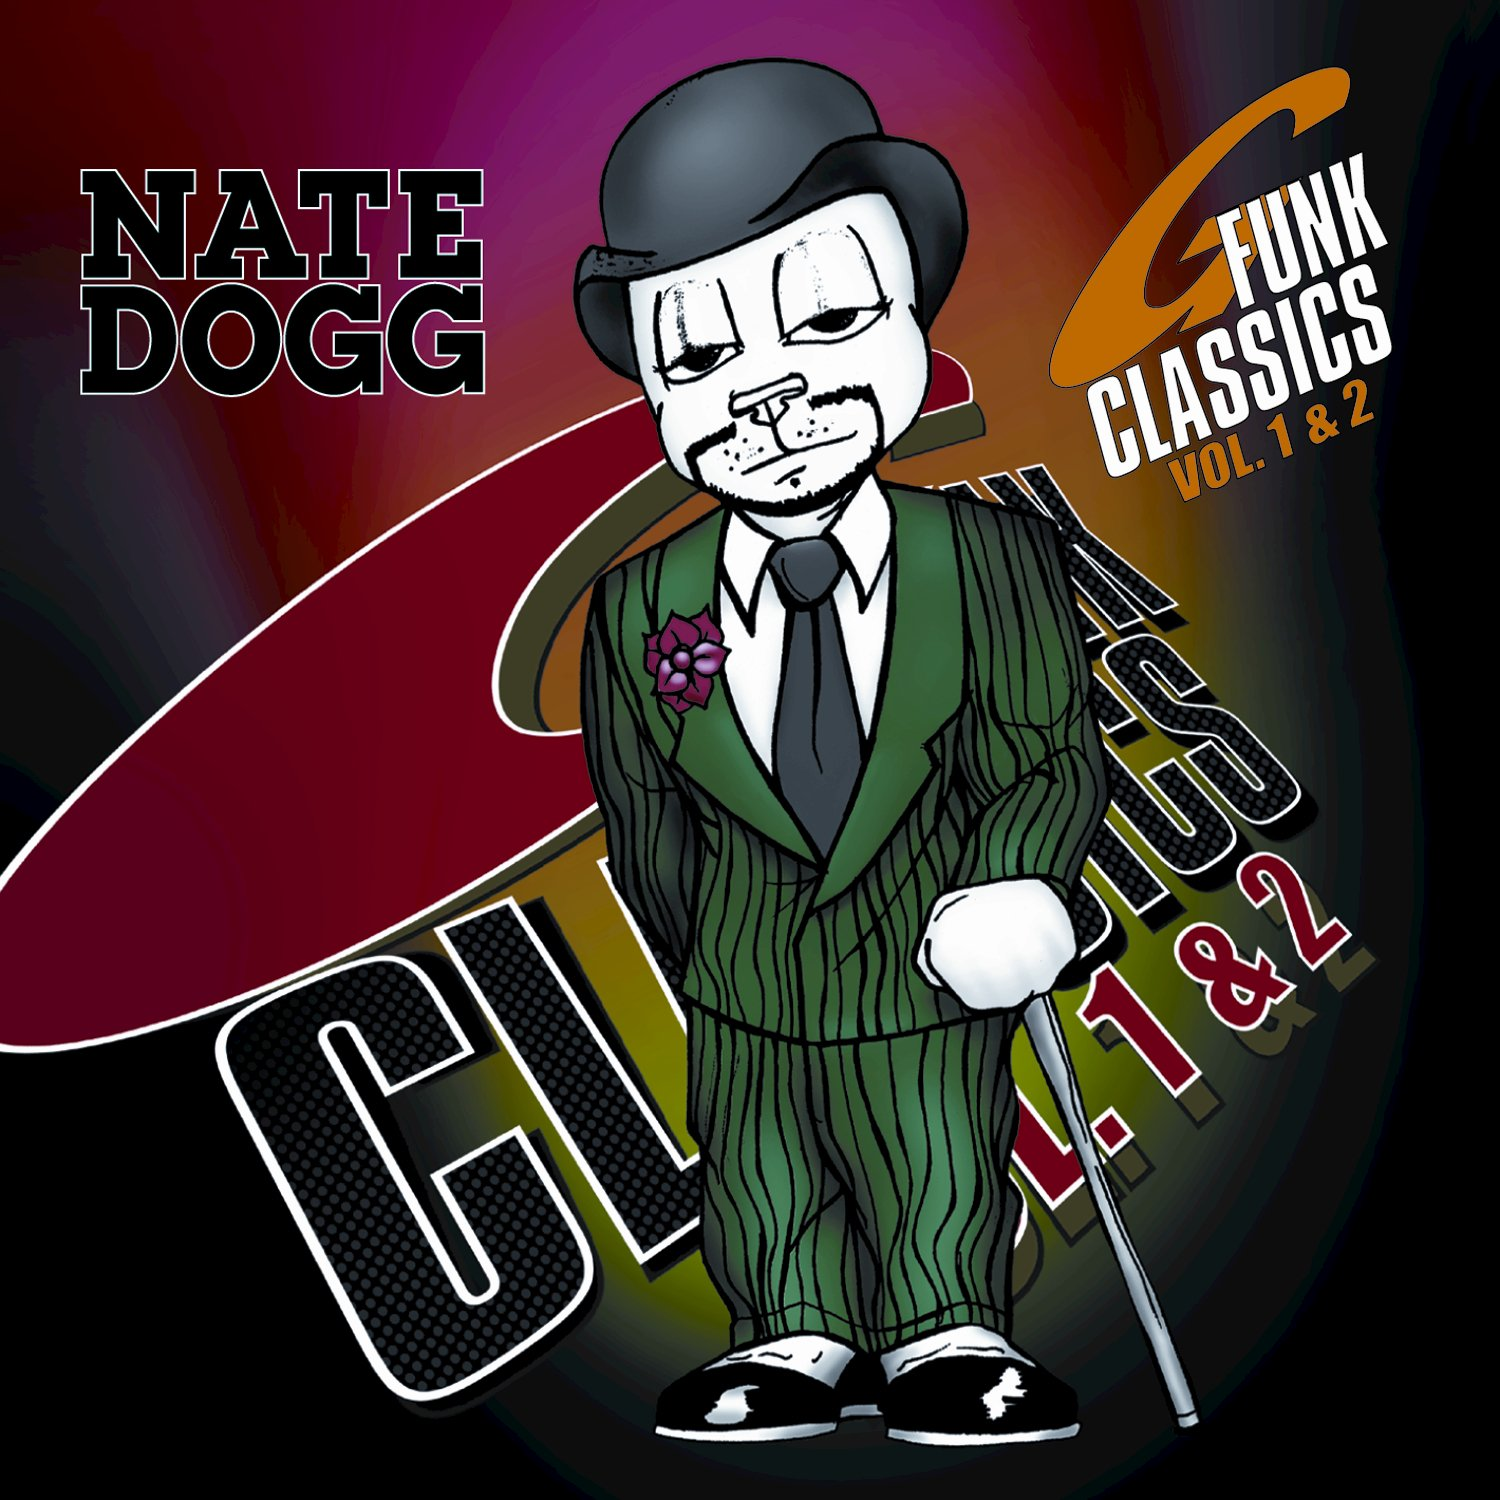 Review: Nate Dogg – G-Funk Classics, Vol. 1 & 2